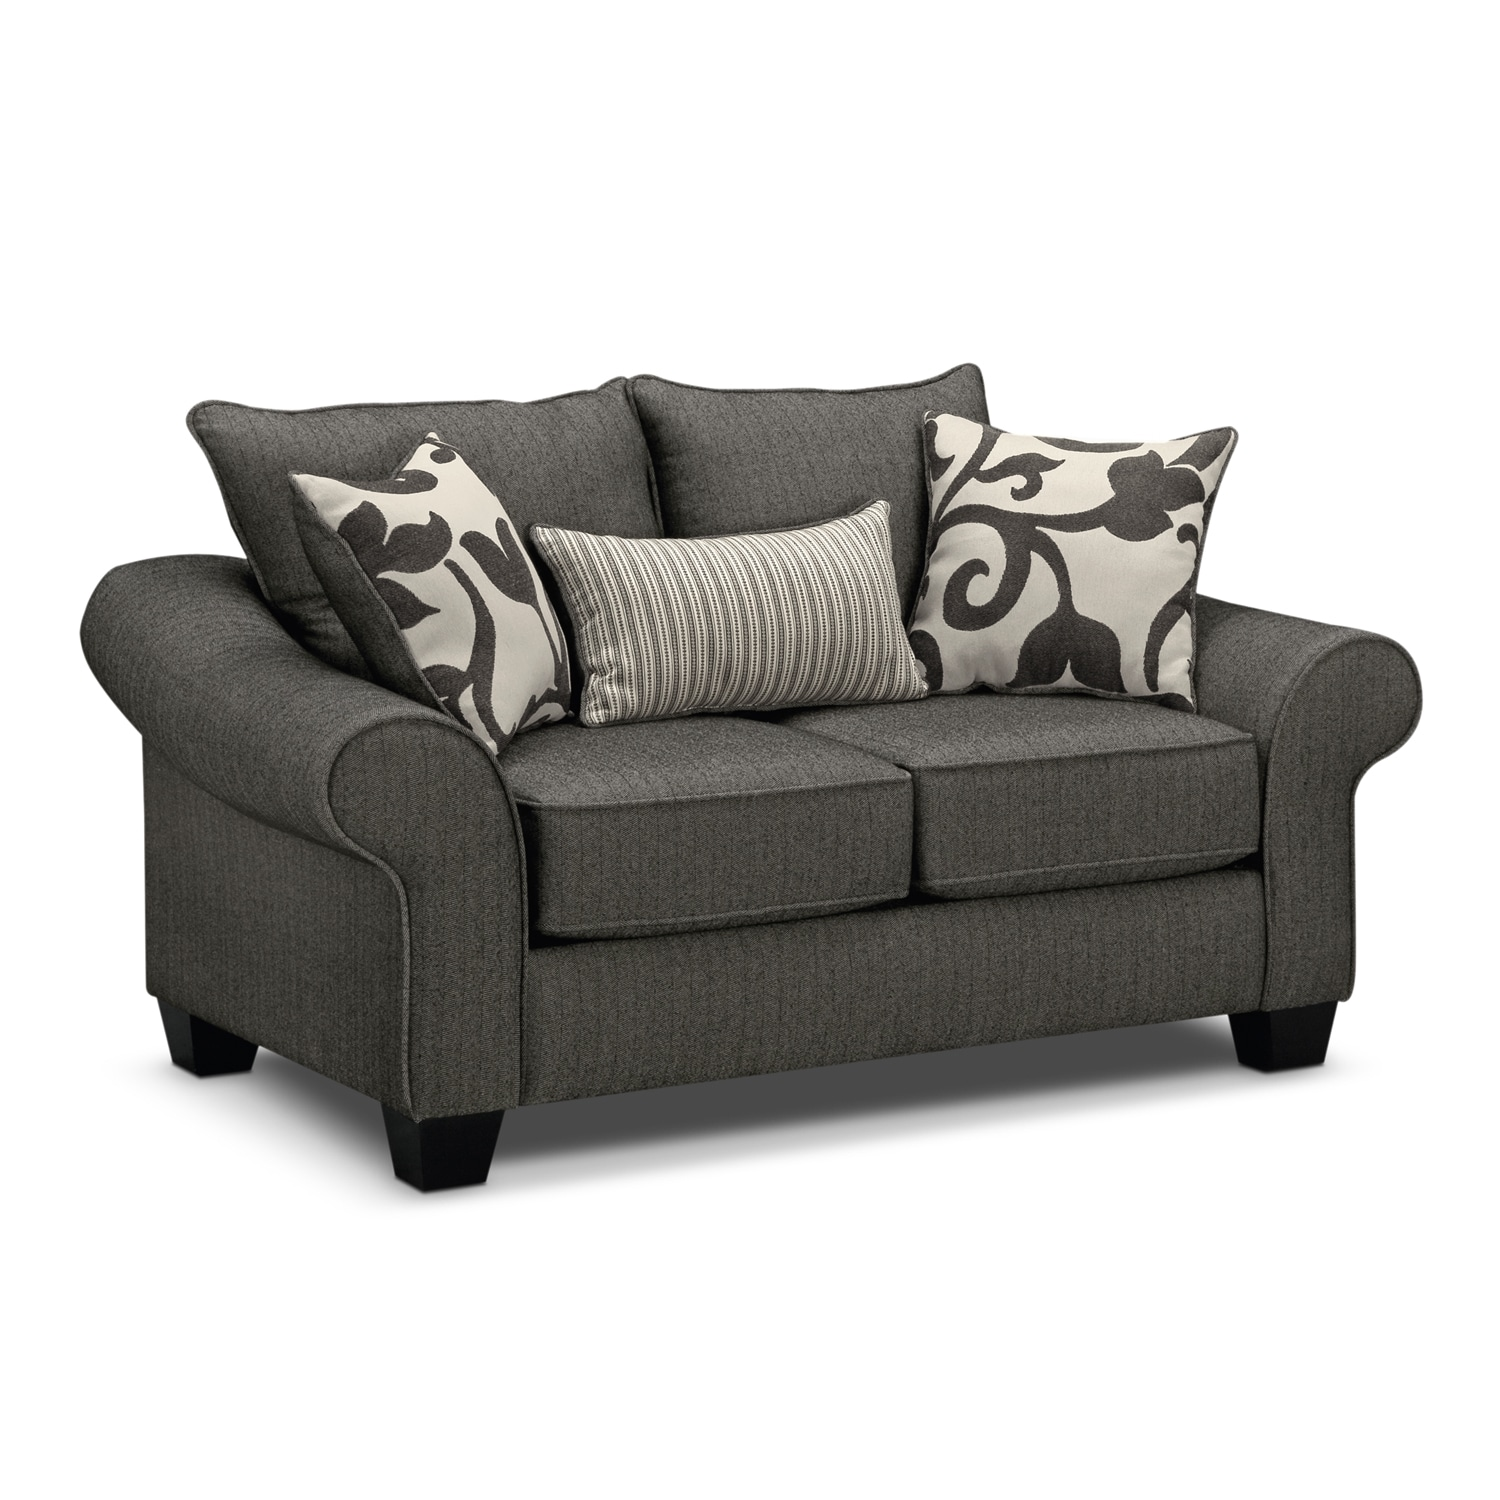 Colette sofa loveseat and accent chair set gray value for Couch und sofa